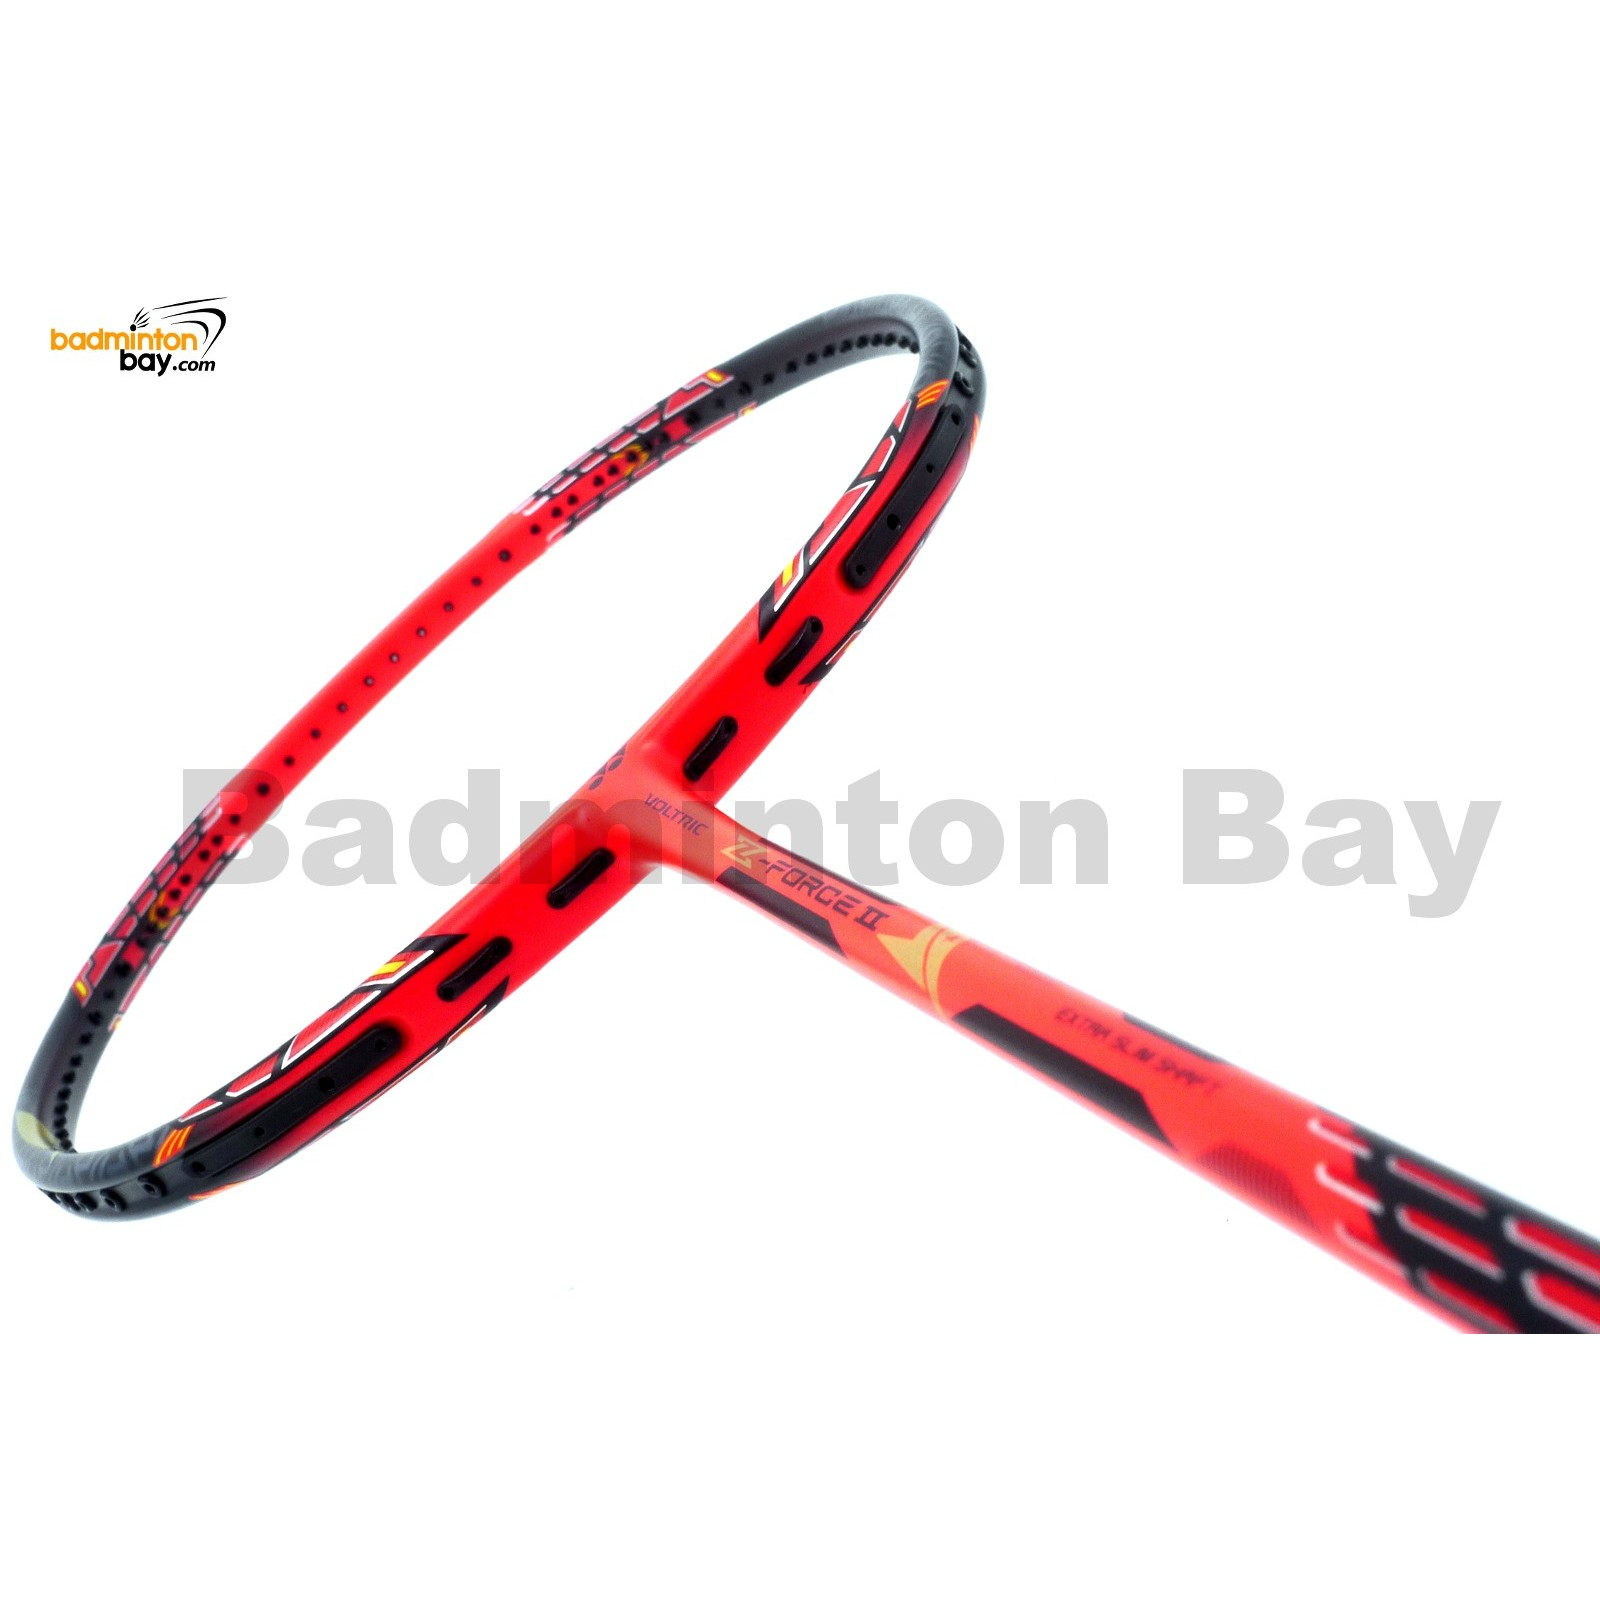 Out of stock Yonex Voltric Z Force II LD Lin Dan Bright Red